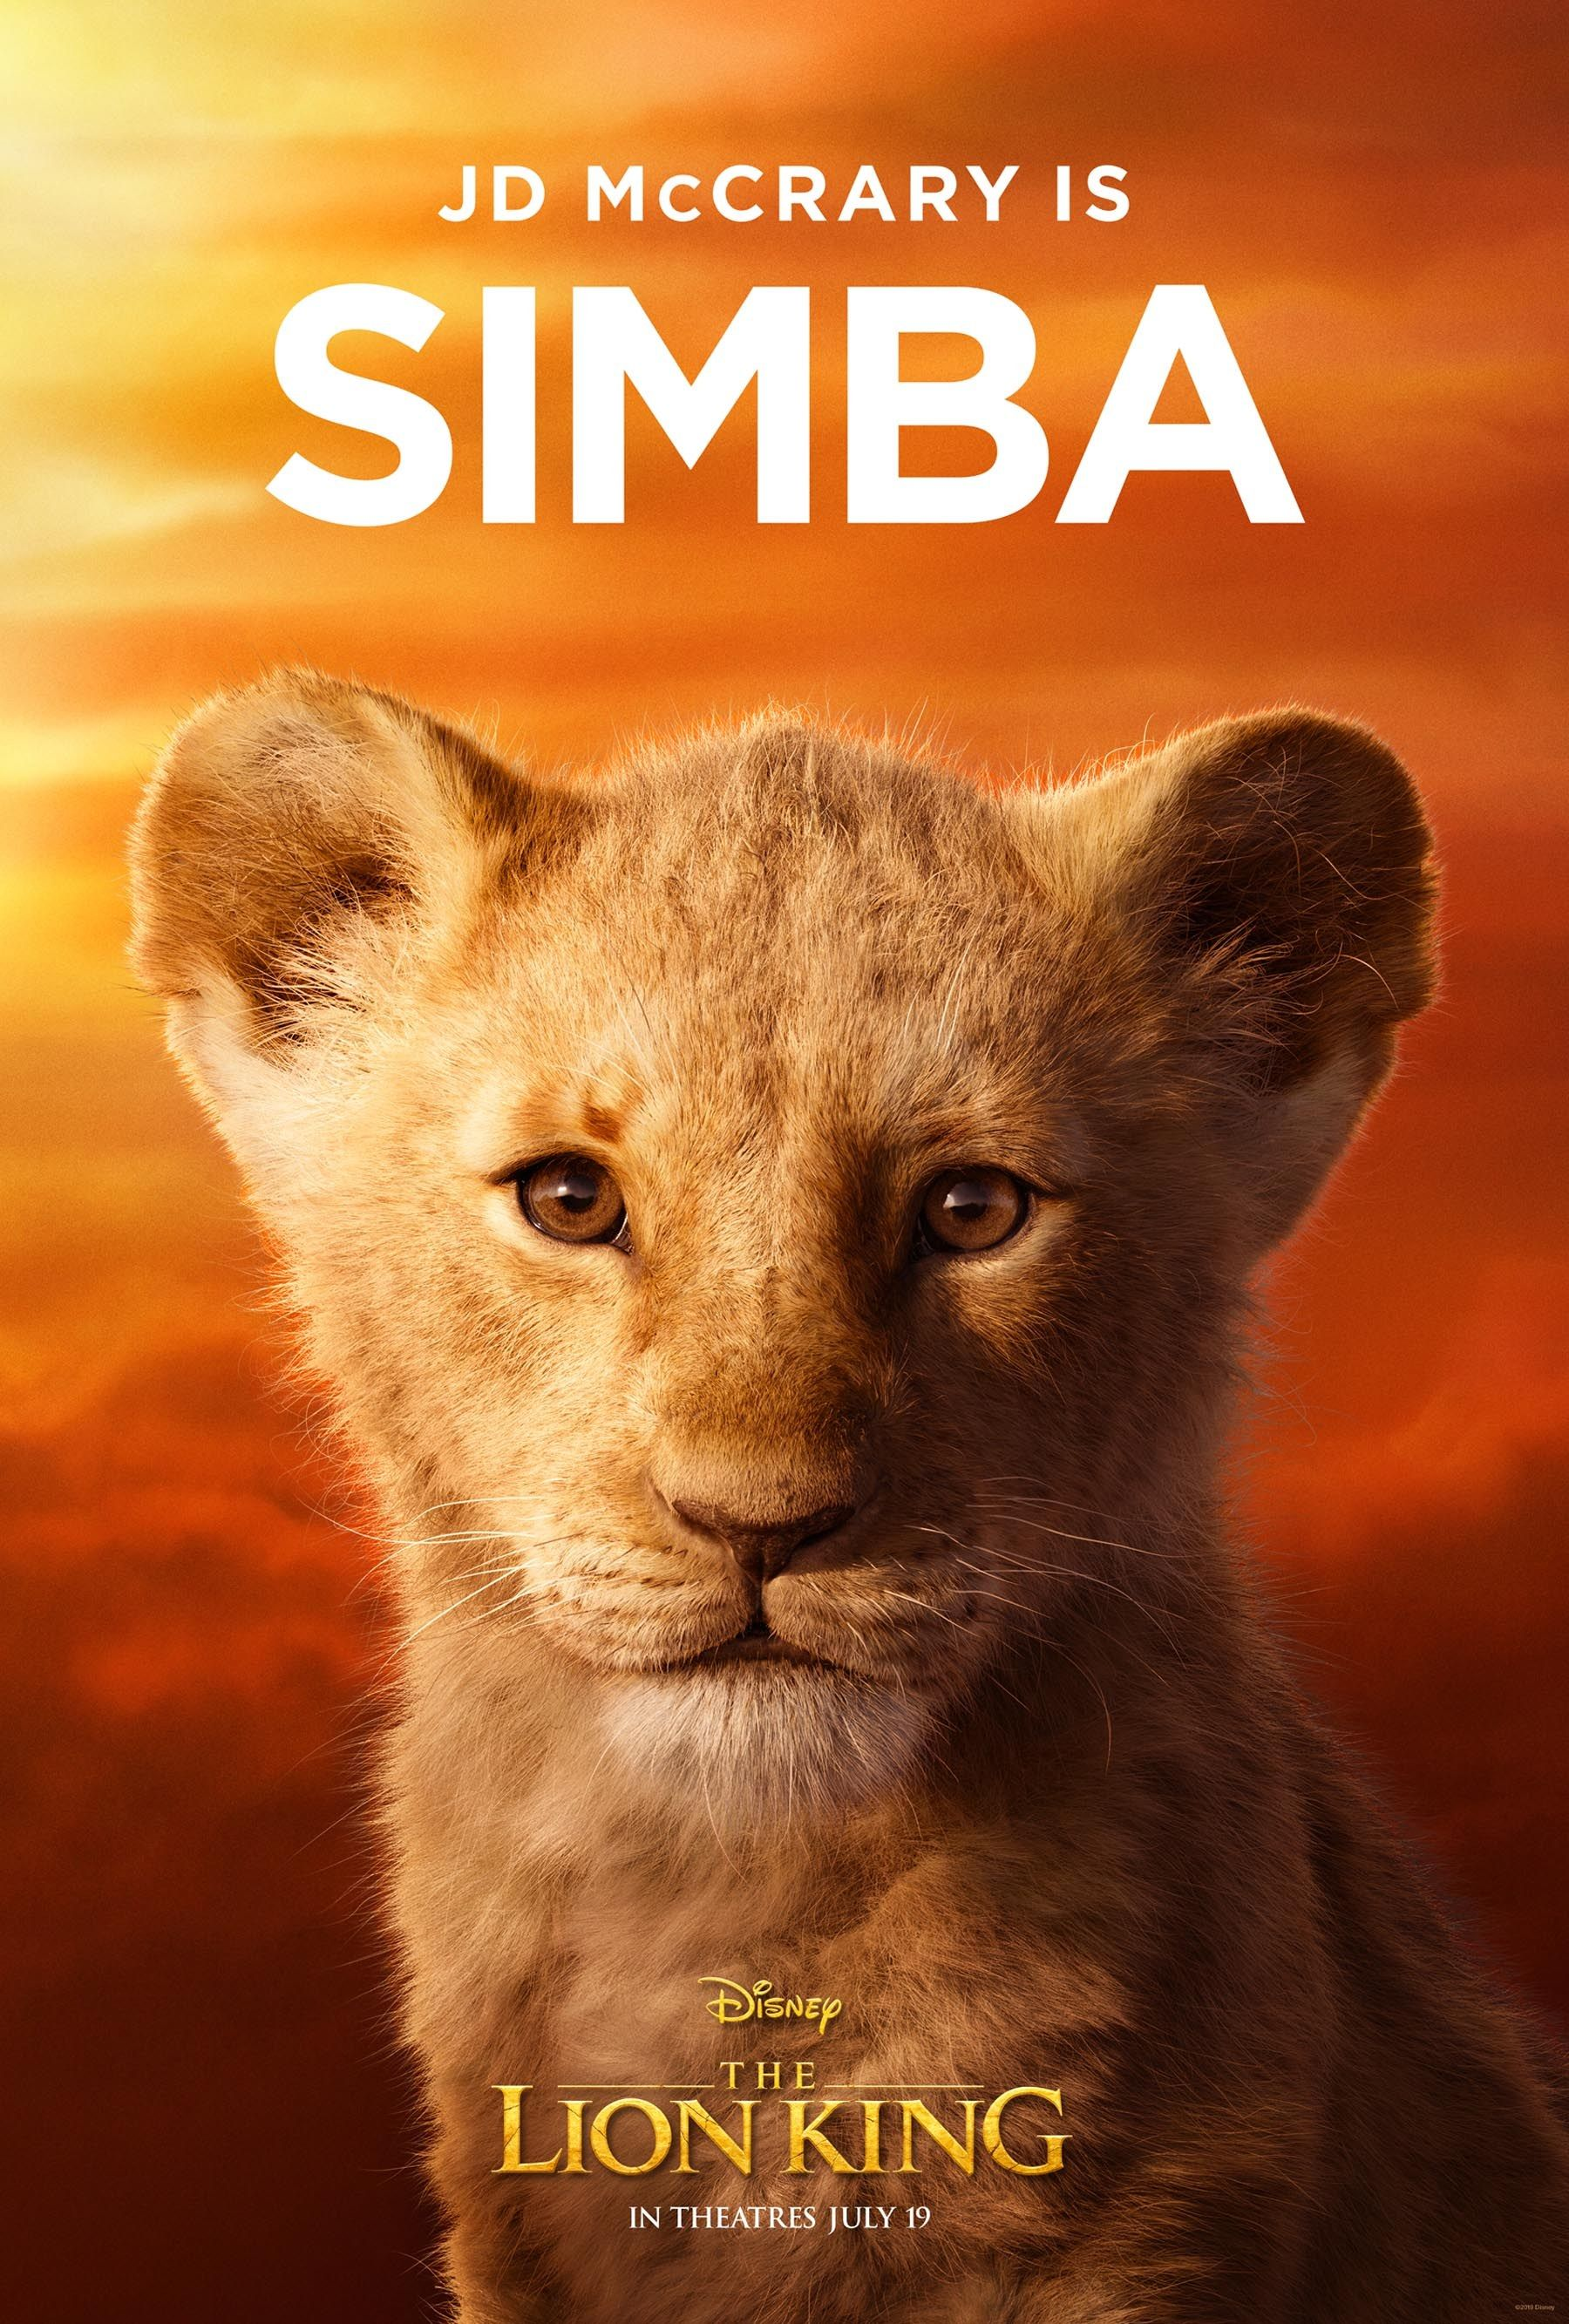 The Lion King Rises See All The Character Posters For The Live Action Film Lion King Poster Lion King Movie Lion King